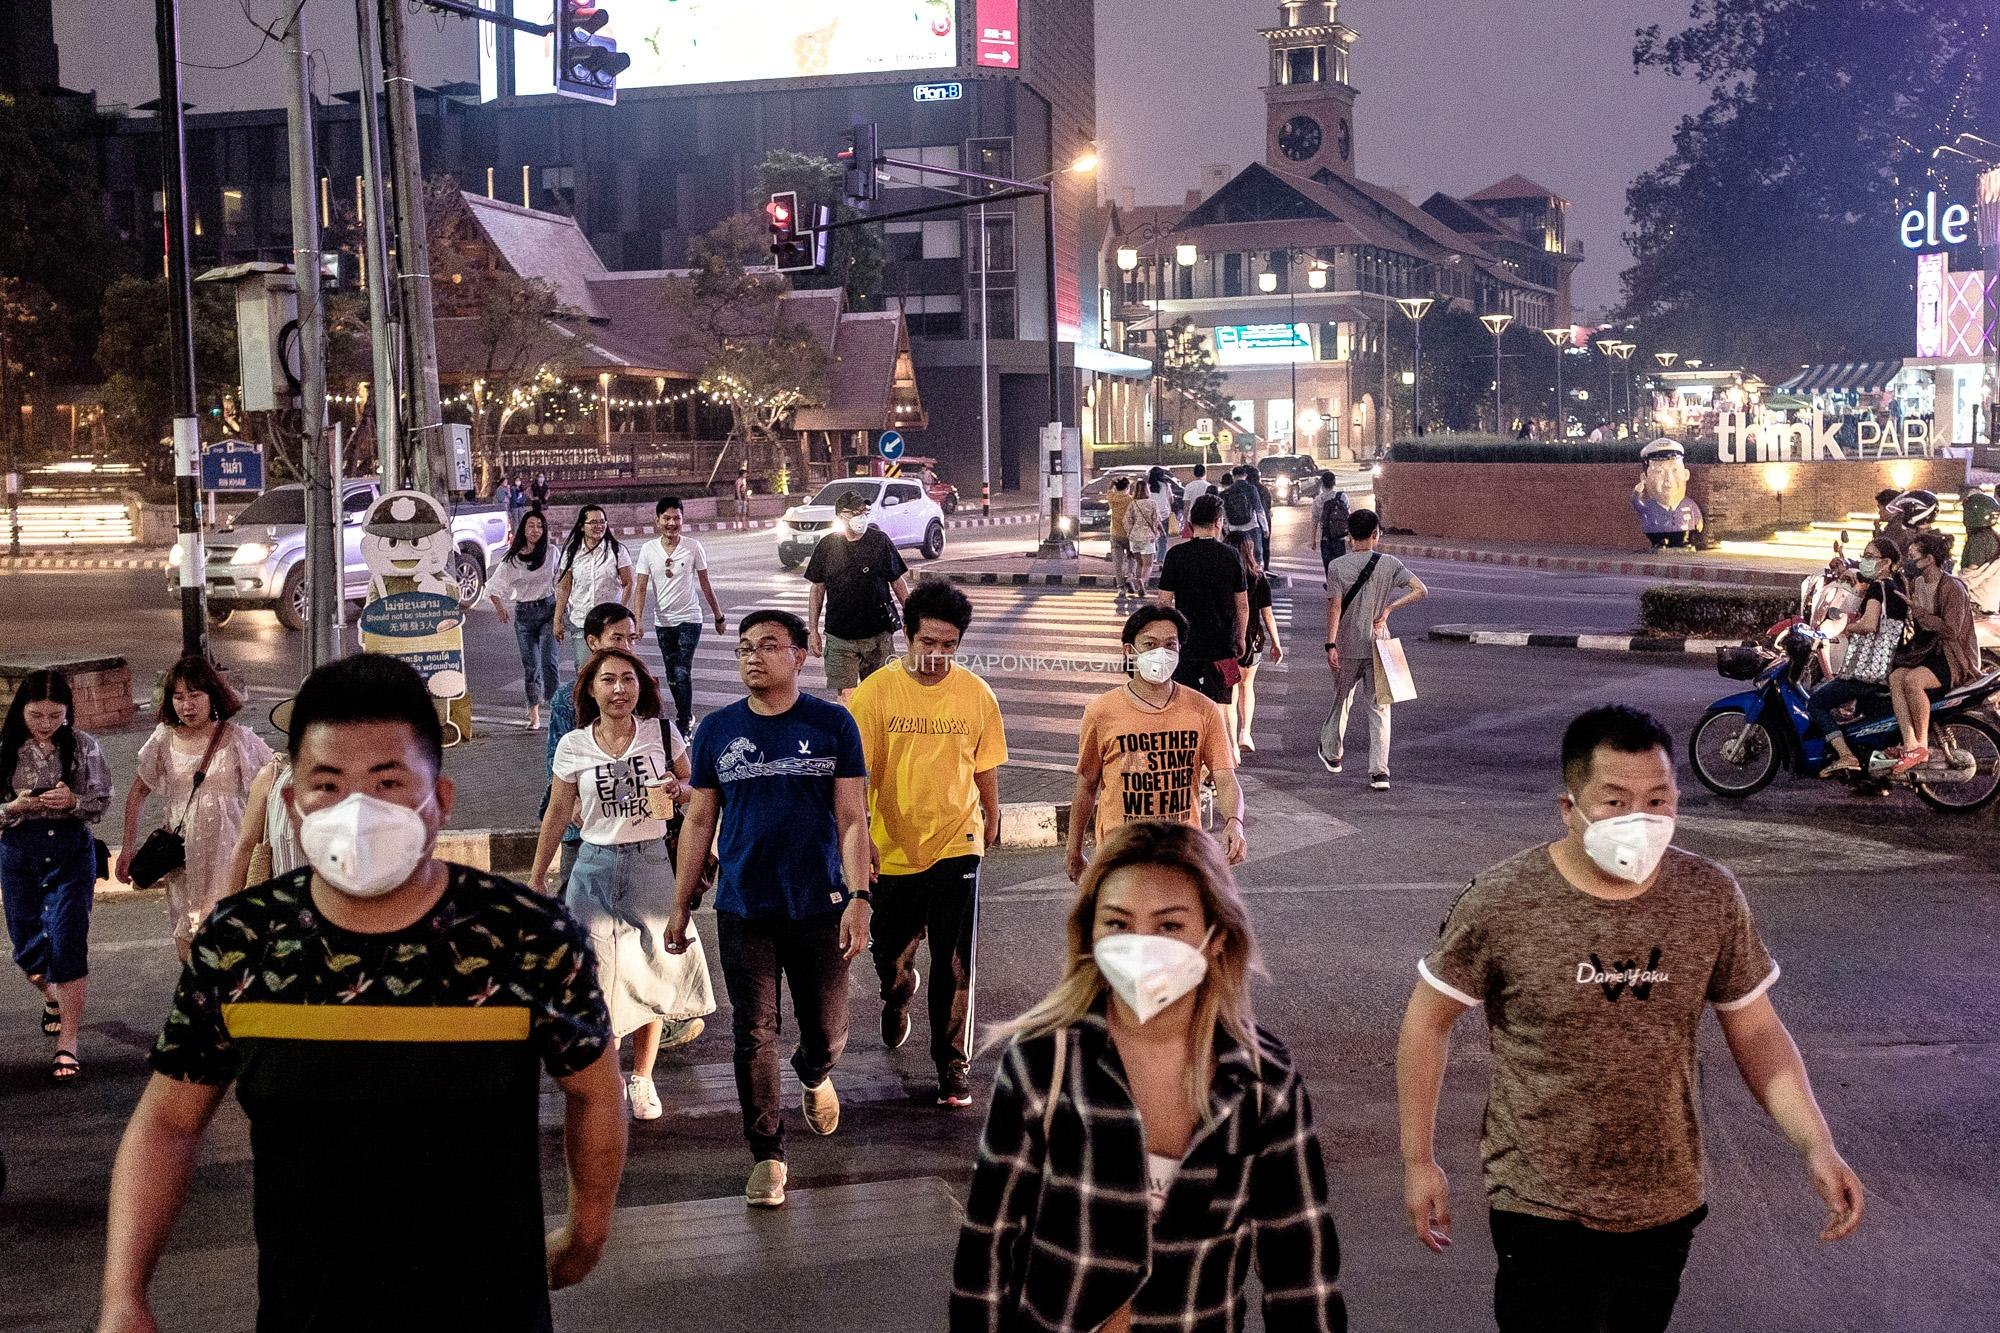 The Chiang Mai sky is covered all over by smoke. Locals and foreigners alike are affected by heavy smog. People are seen walking in the evening across the Rin Kham intersection of Suthep and Nimmanhaeminda road. This is one of the locations in Chiang Mai that has economic importance, due to its trendy shops, restaurants, cafes, and galleries.